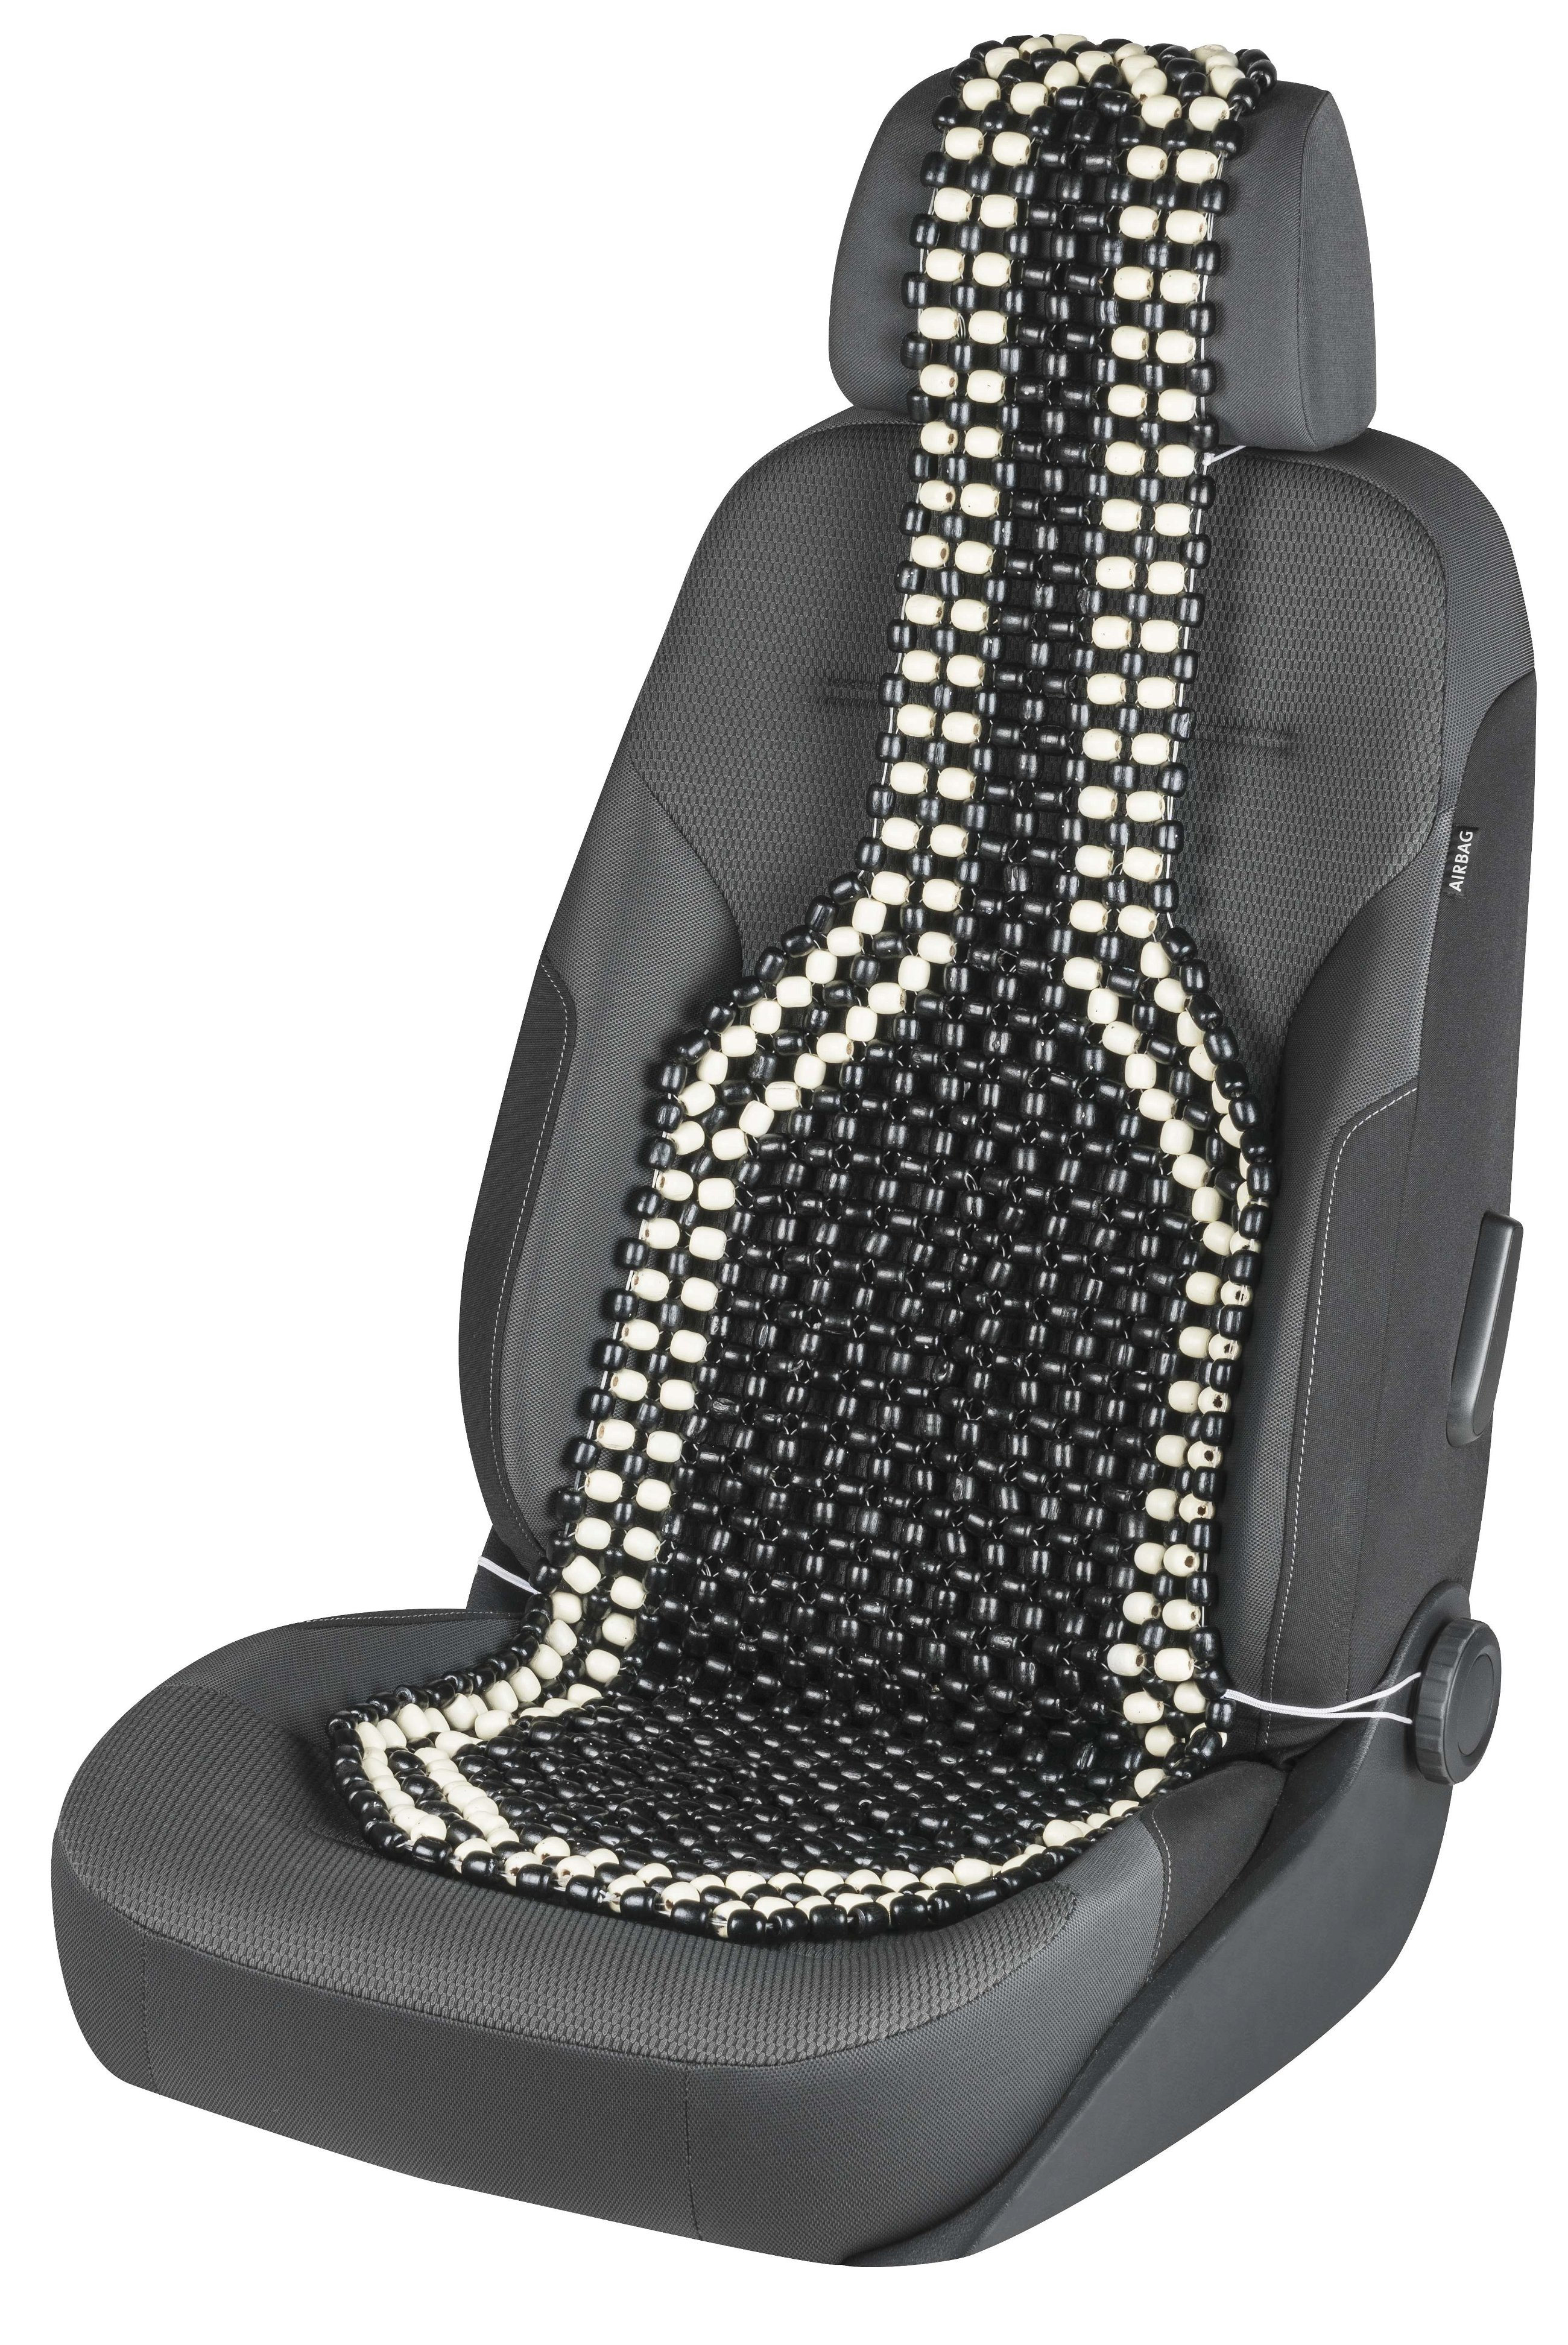 Car Seat Cover From Wooden Beads Black White Seat Cushions Seat Covers Cushions Walser Online Shop